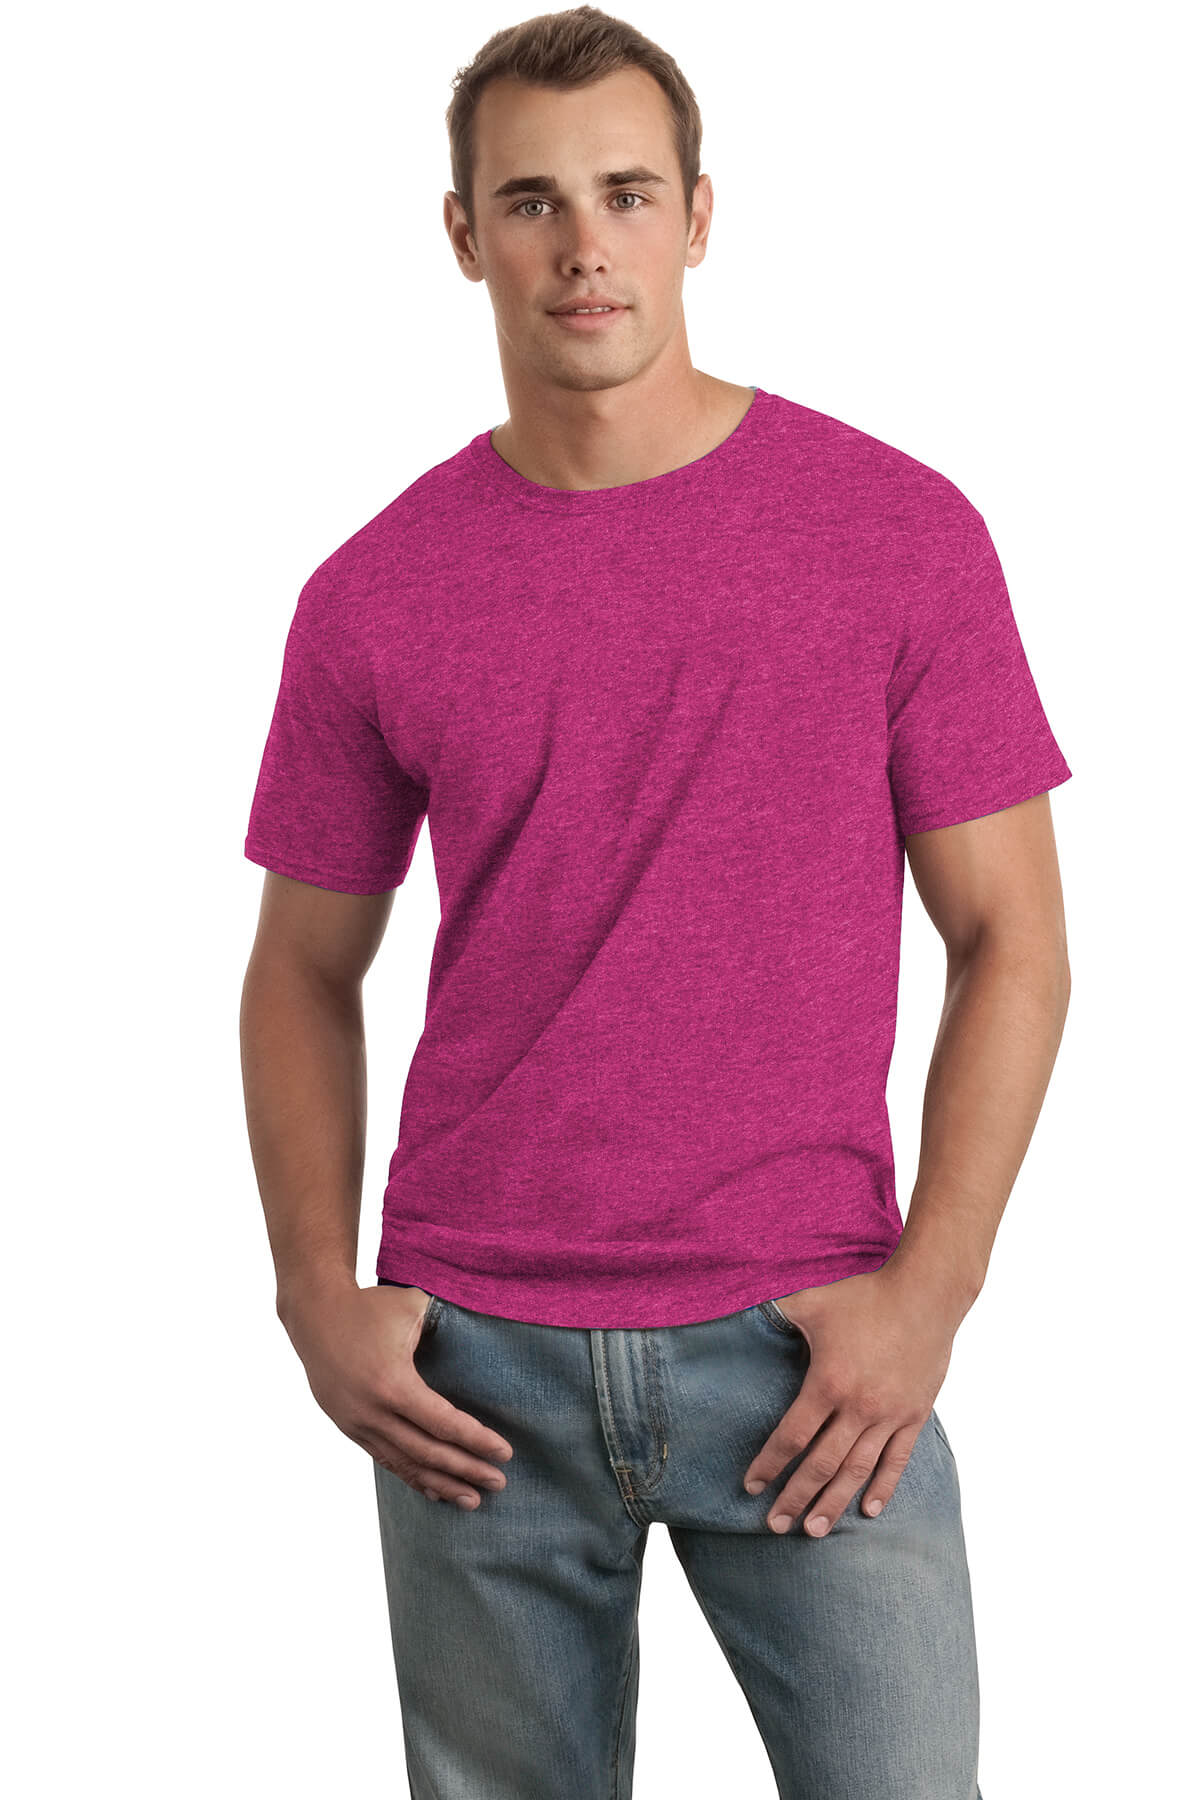 Heliconia T-Shirt Model Front